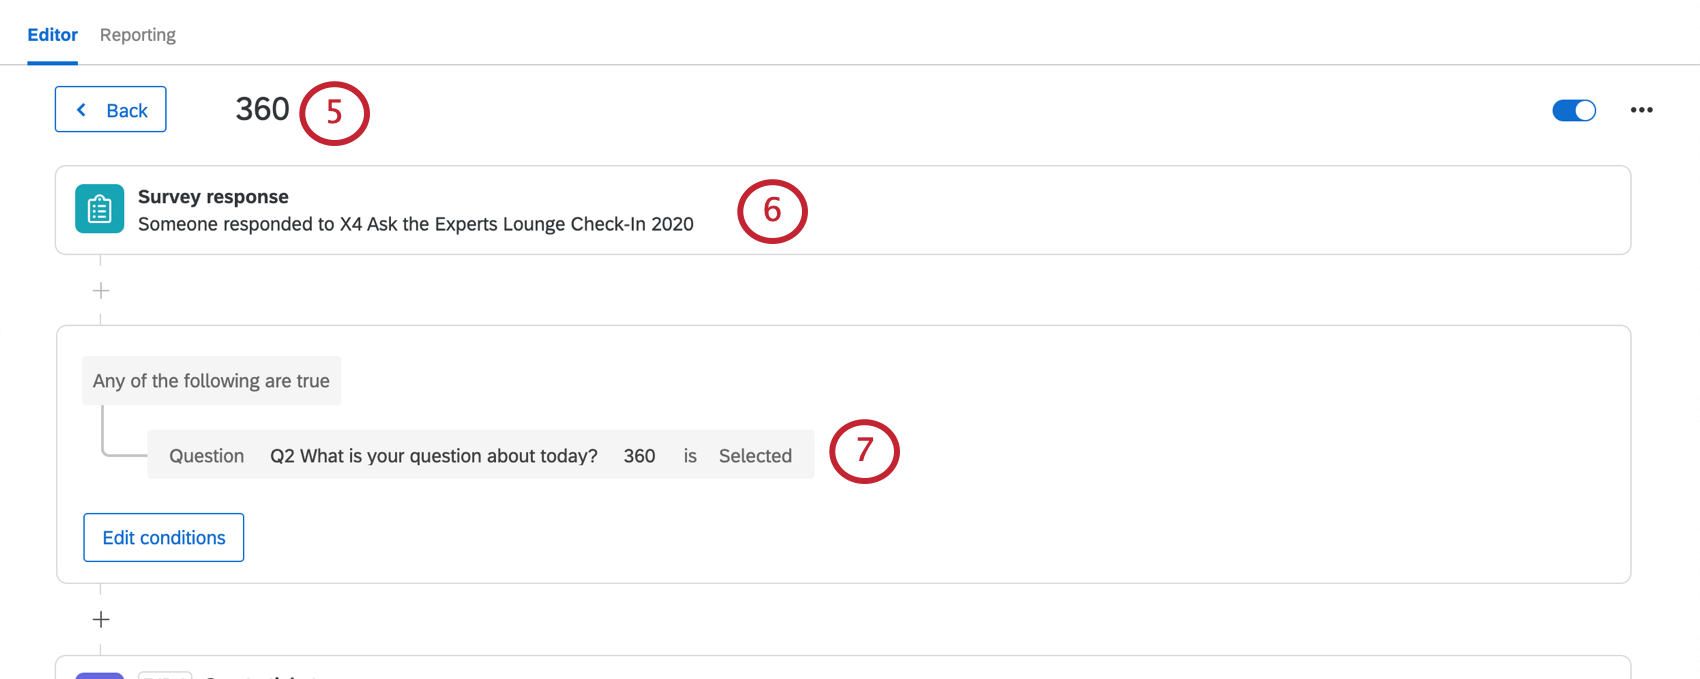 """Actions tab of intake survey. There is an action named """"360"""" and the first part, where it says to select what starts the action, contains a """"survey response"""". Condition in the action shows as described"""